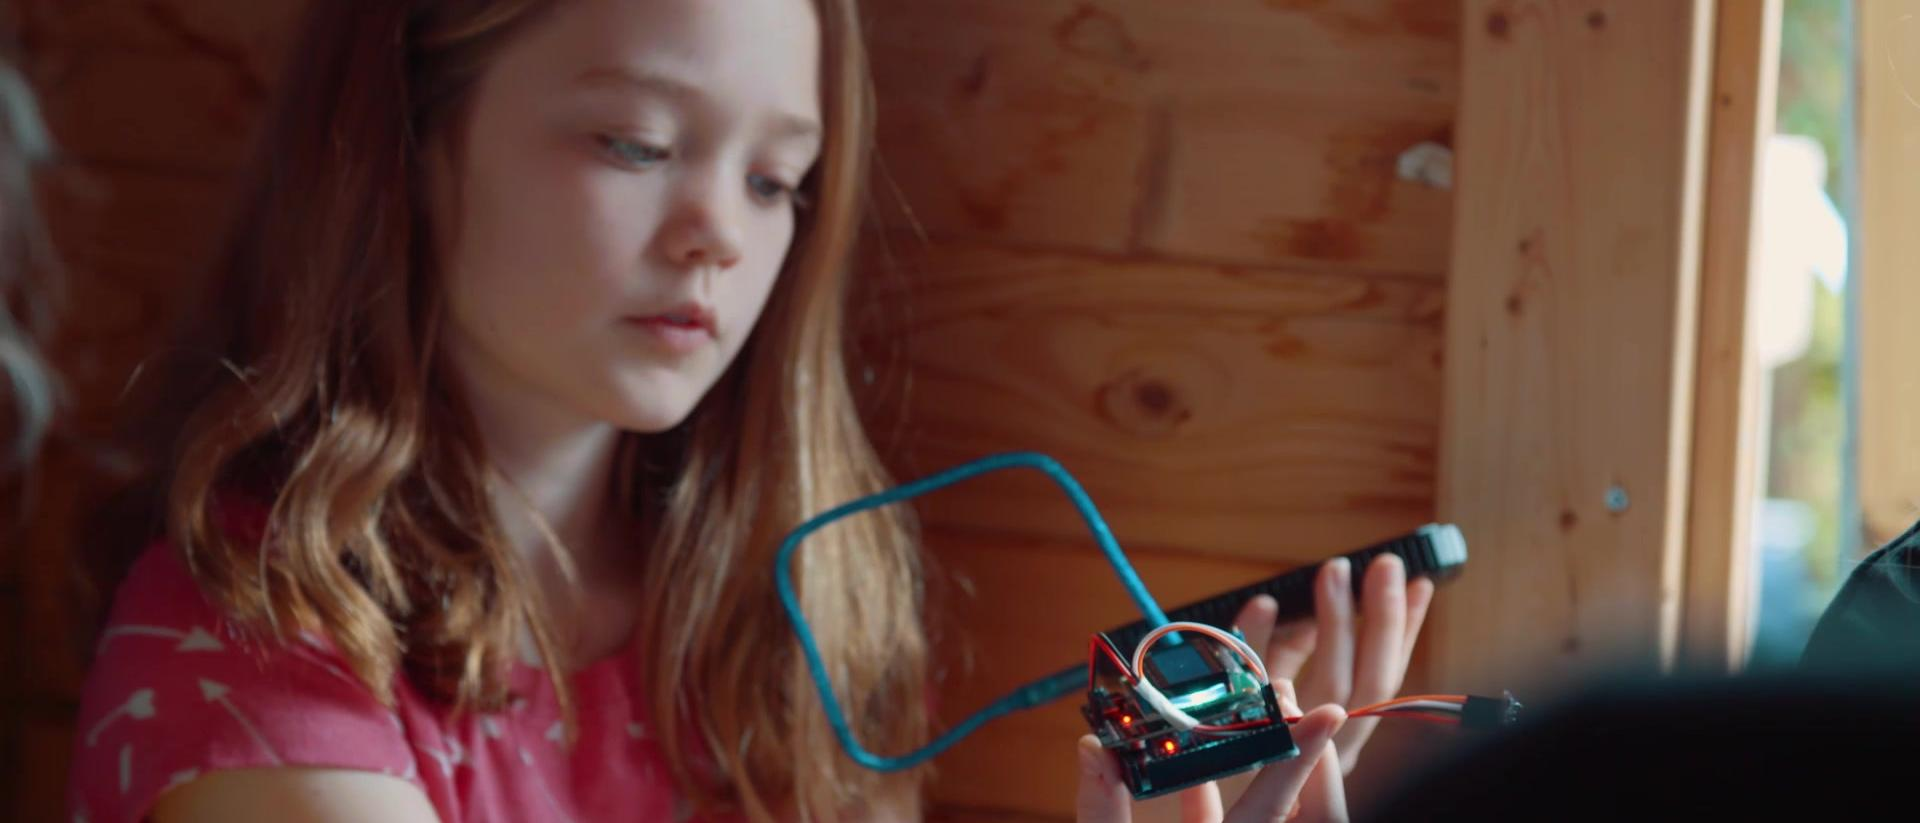 Young girl looking at a homemade electronic device.